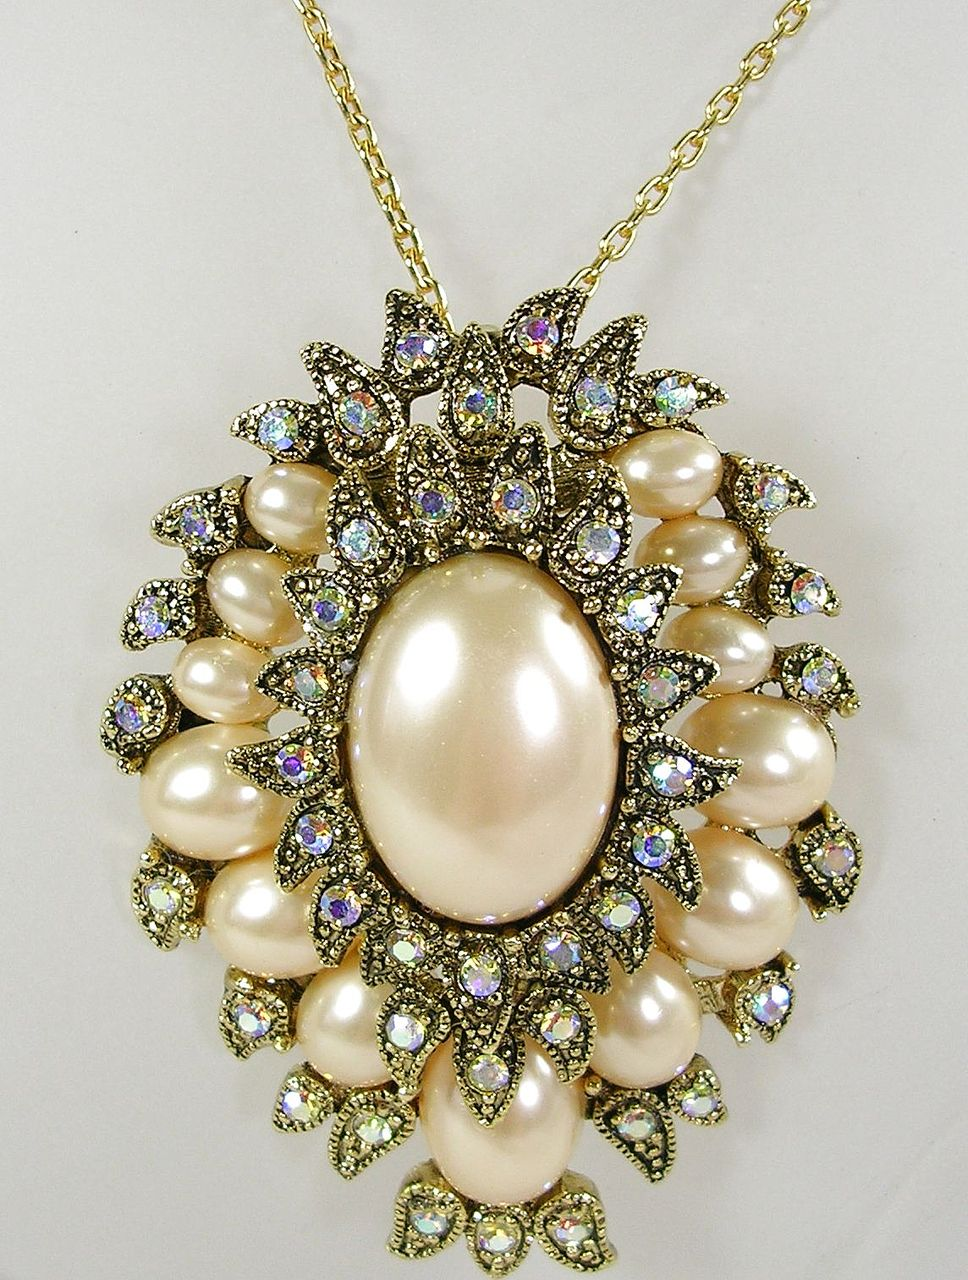 Vintage Pendant Brooch Pin with Simulated  Pearls and Aurora Borealis Crystals in a Antique Gold  Tone! – Beautiful!